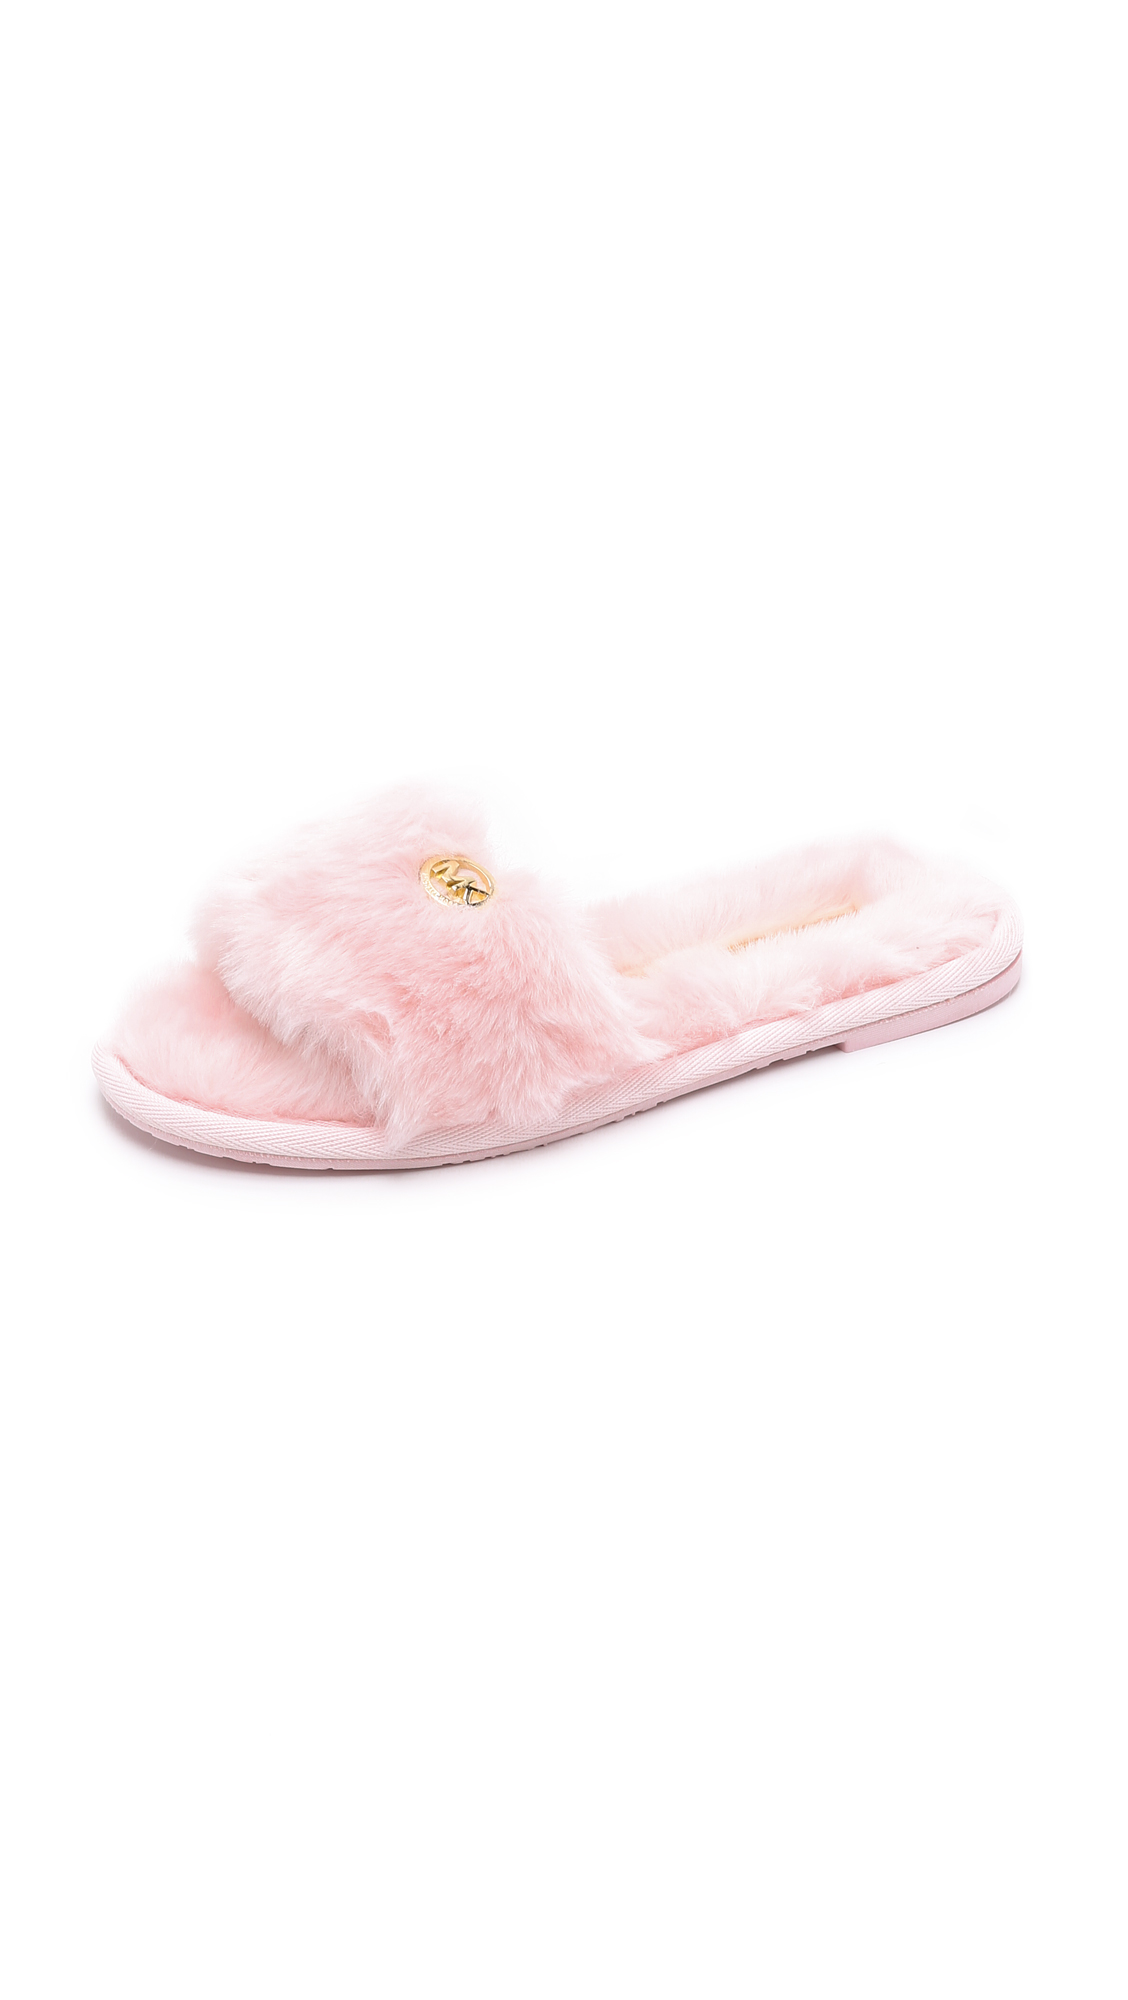 98993e4a68e1 MICHAEL Michael Kors Jet Set Faux Fur Slide Slippers